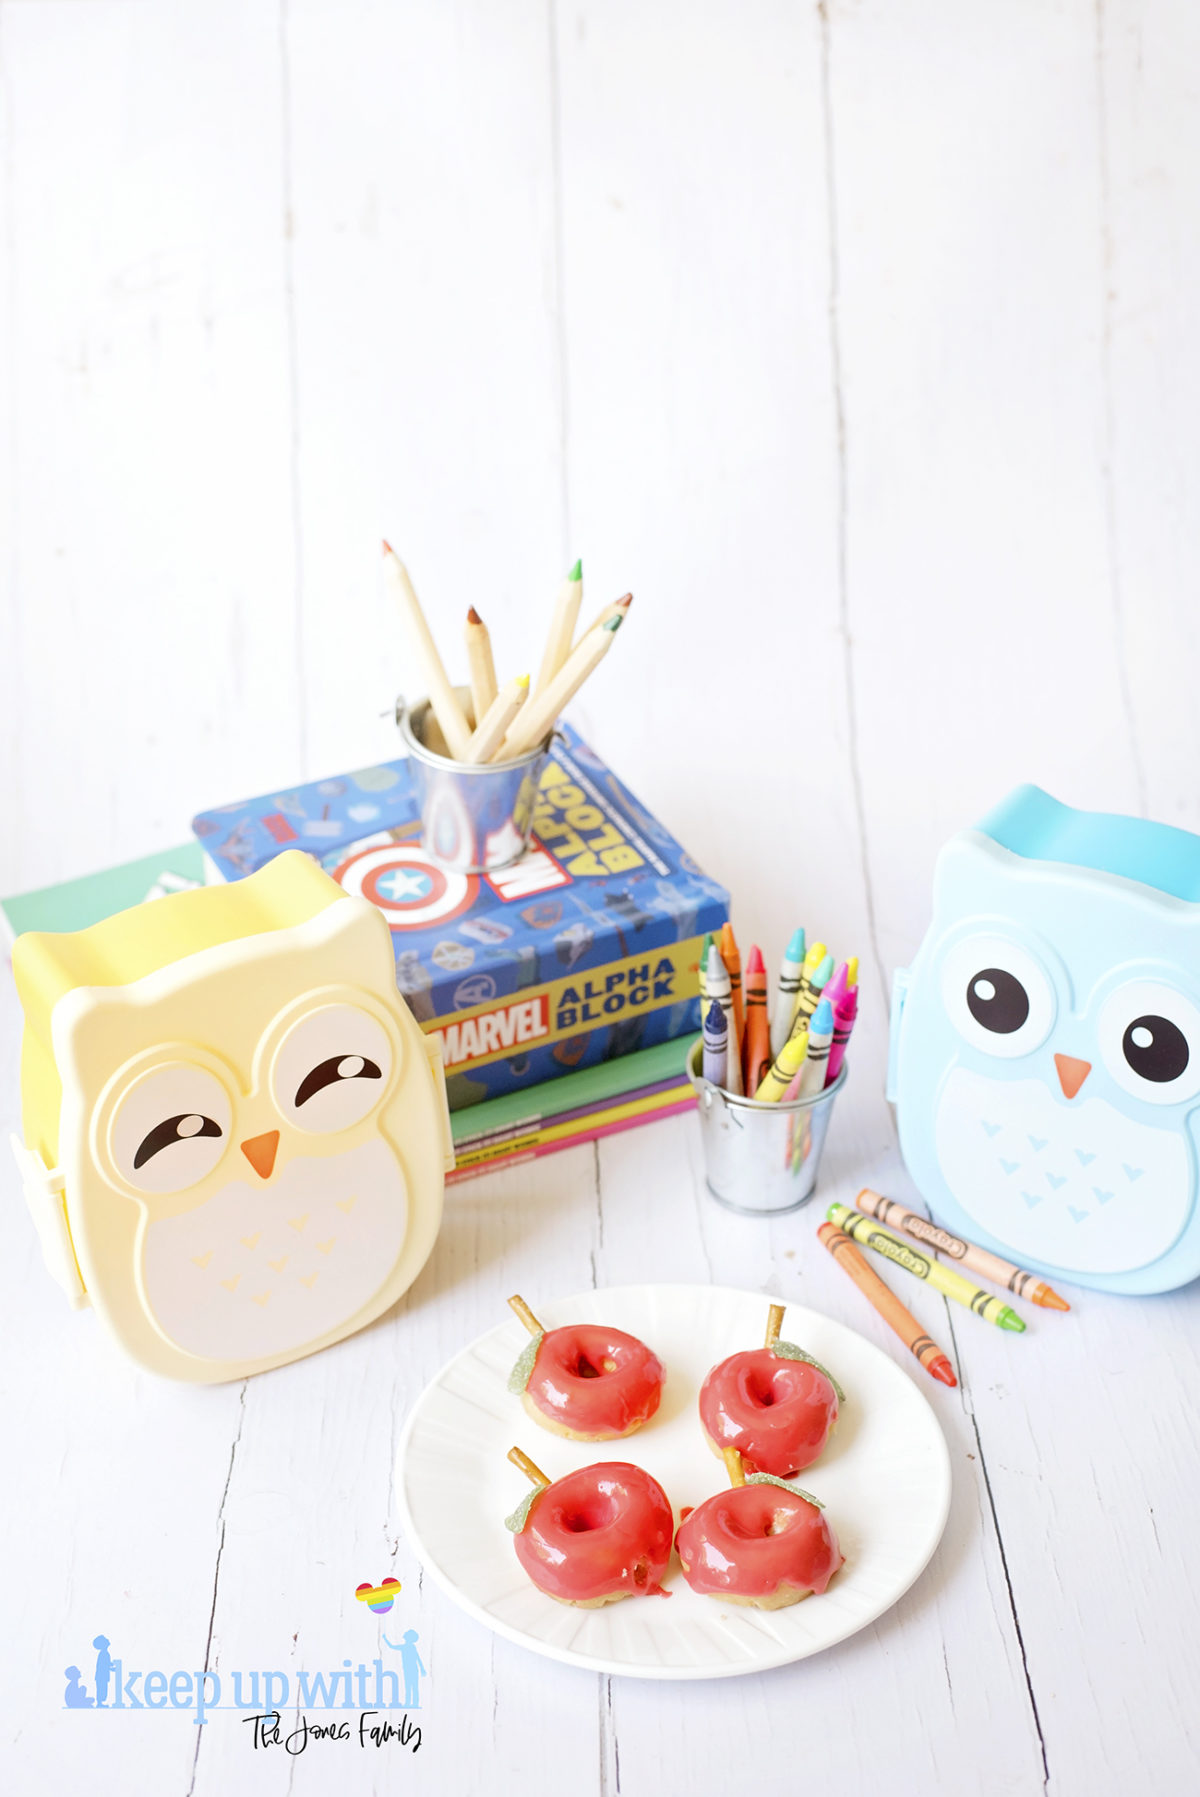 Image shows Back to School Doughnuts on a white Vera Wang plate, sitting on a white wooden surface. There are small owl shaped bento boxes and books in the background, along with a bucket of crayola crayons. Image by Sara-Jayne from Keep Up With The Jones Family.